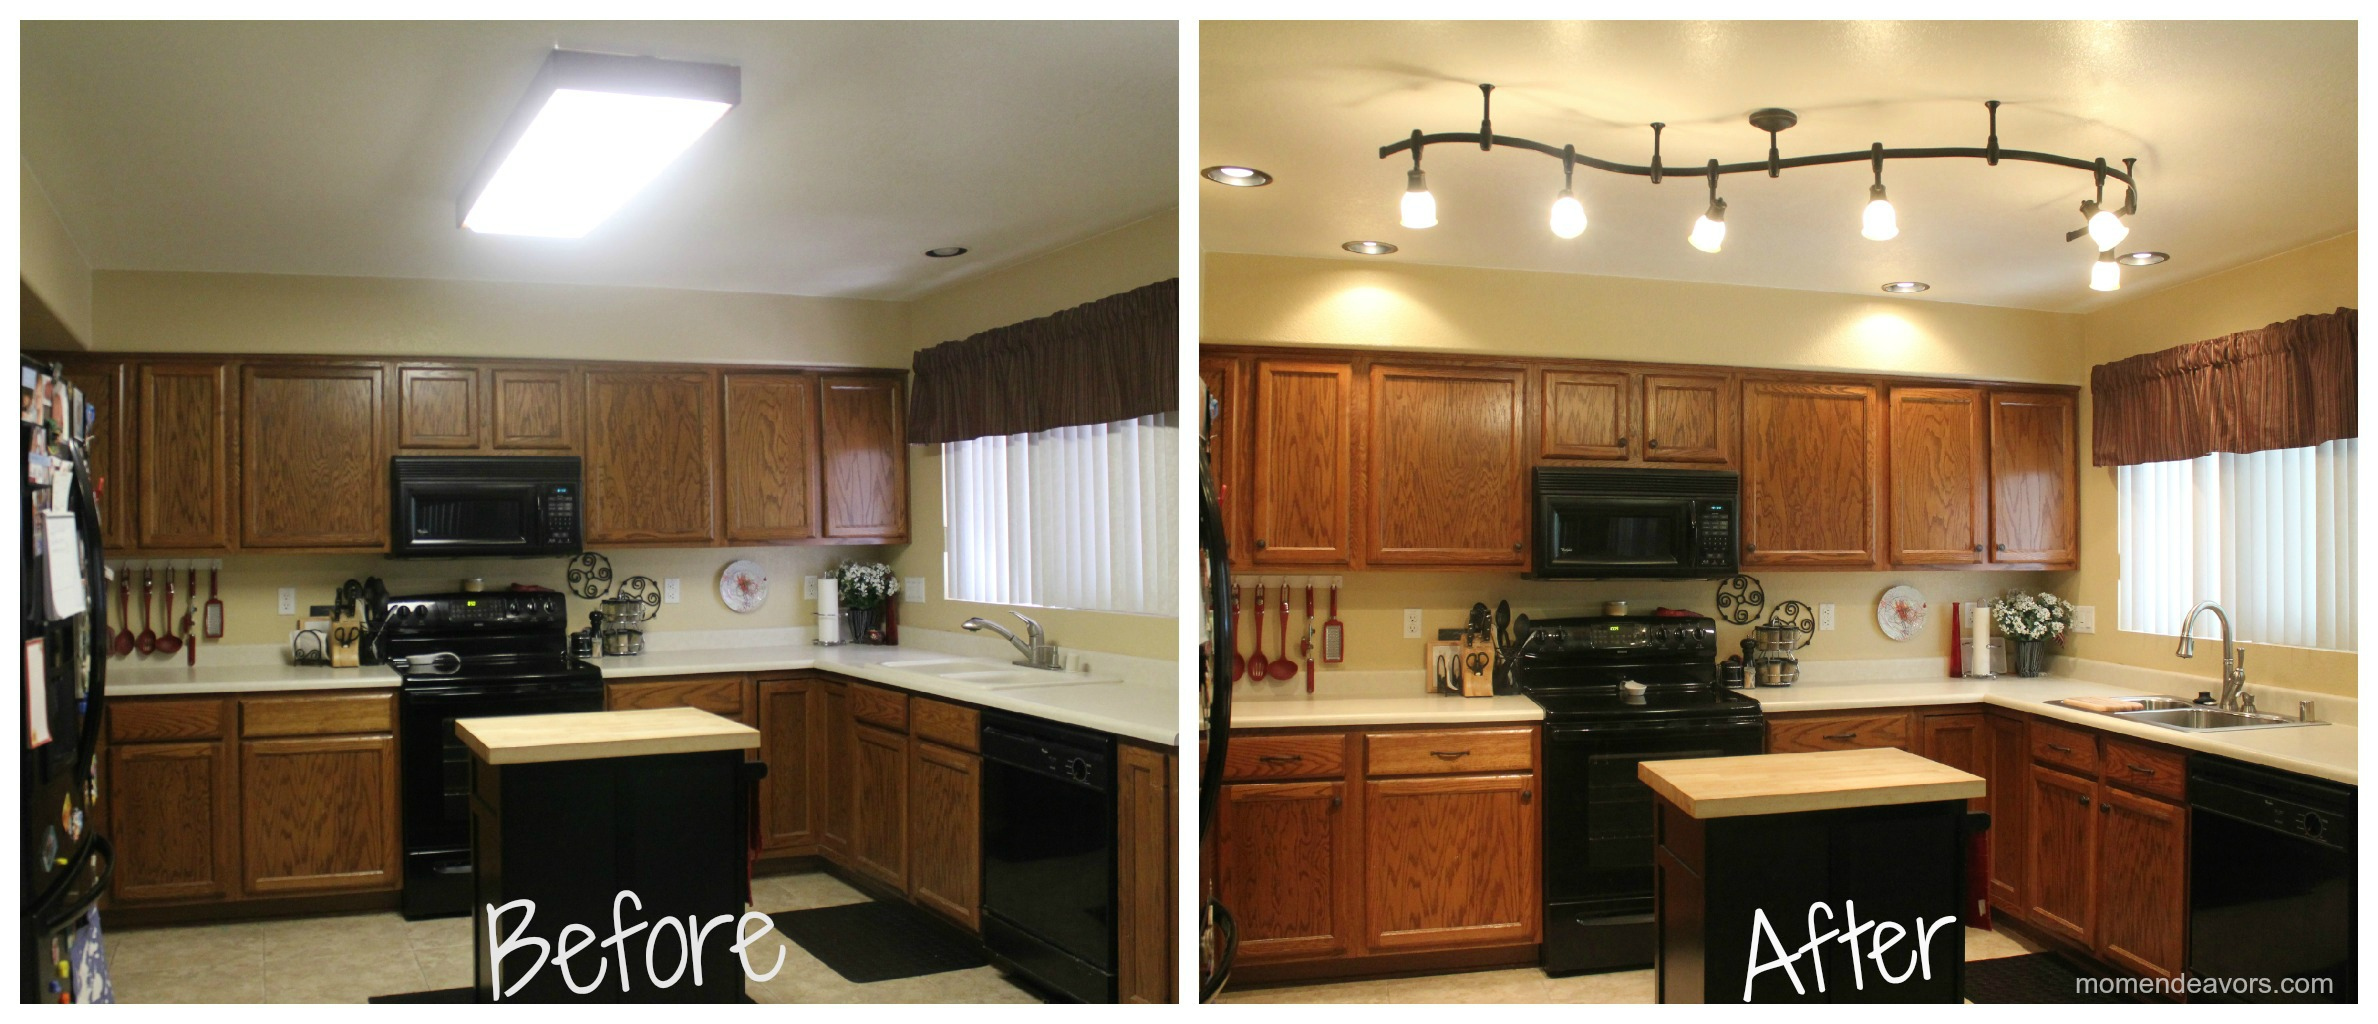 Recessed Lighting In Kitchen Mini Kitchen Remodel New Lighting Makes A World Of Difference